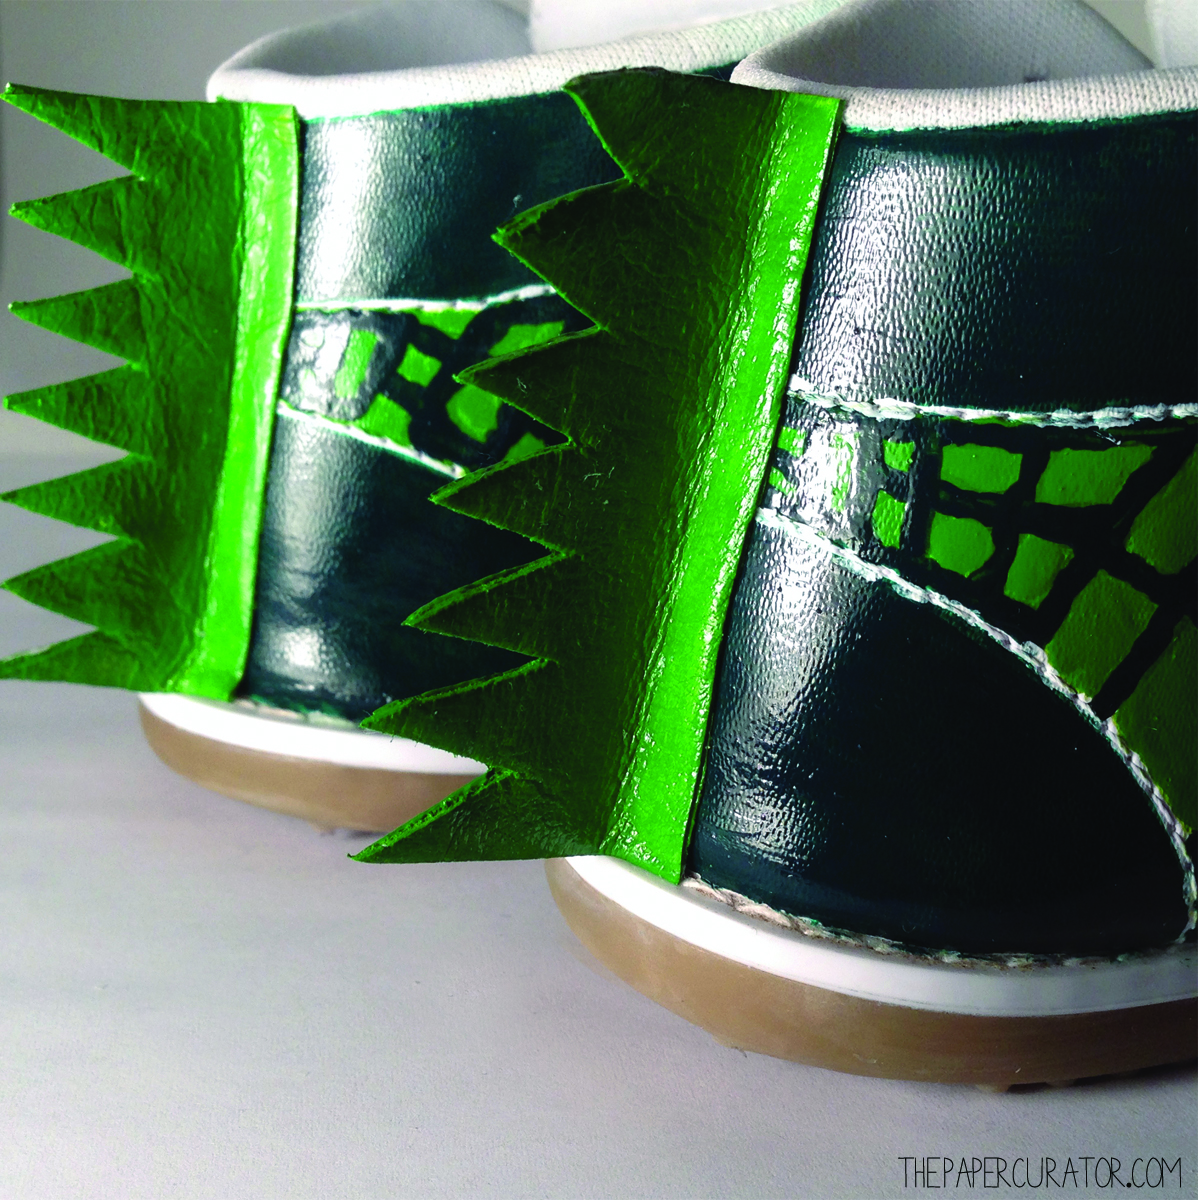 FINISHED FINS APPLIED WITH CRAFT AND FABRIC GLUE TO THE BACK OF THE FINISHED SHOES.